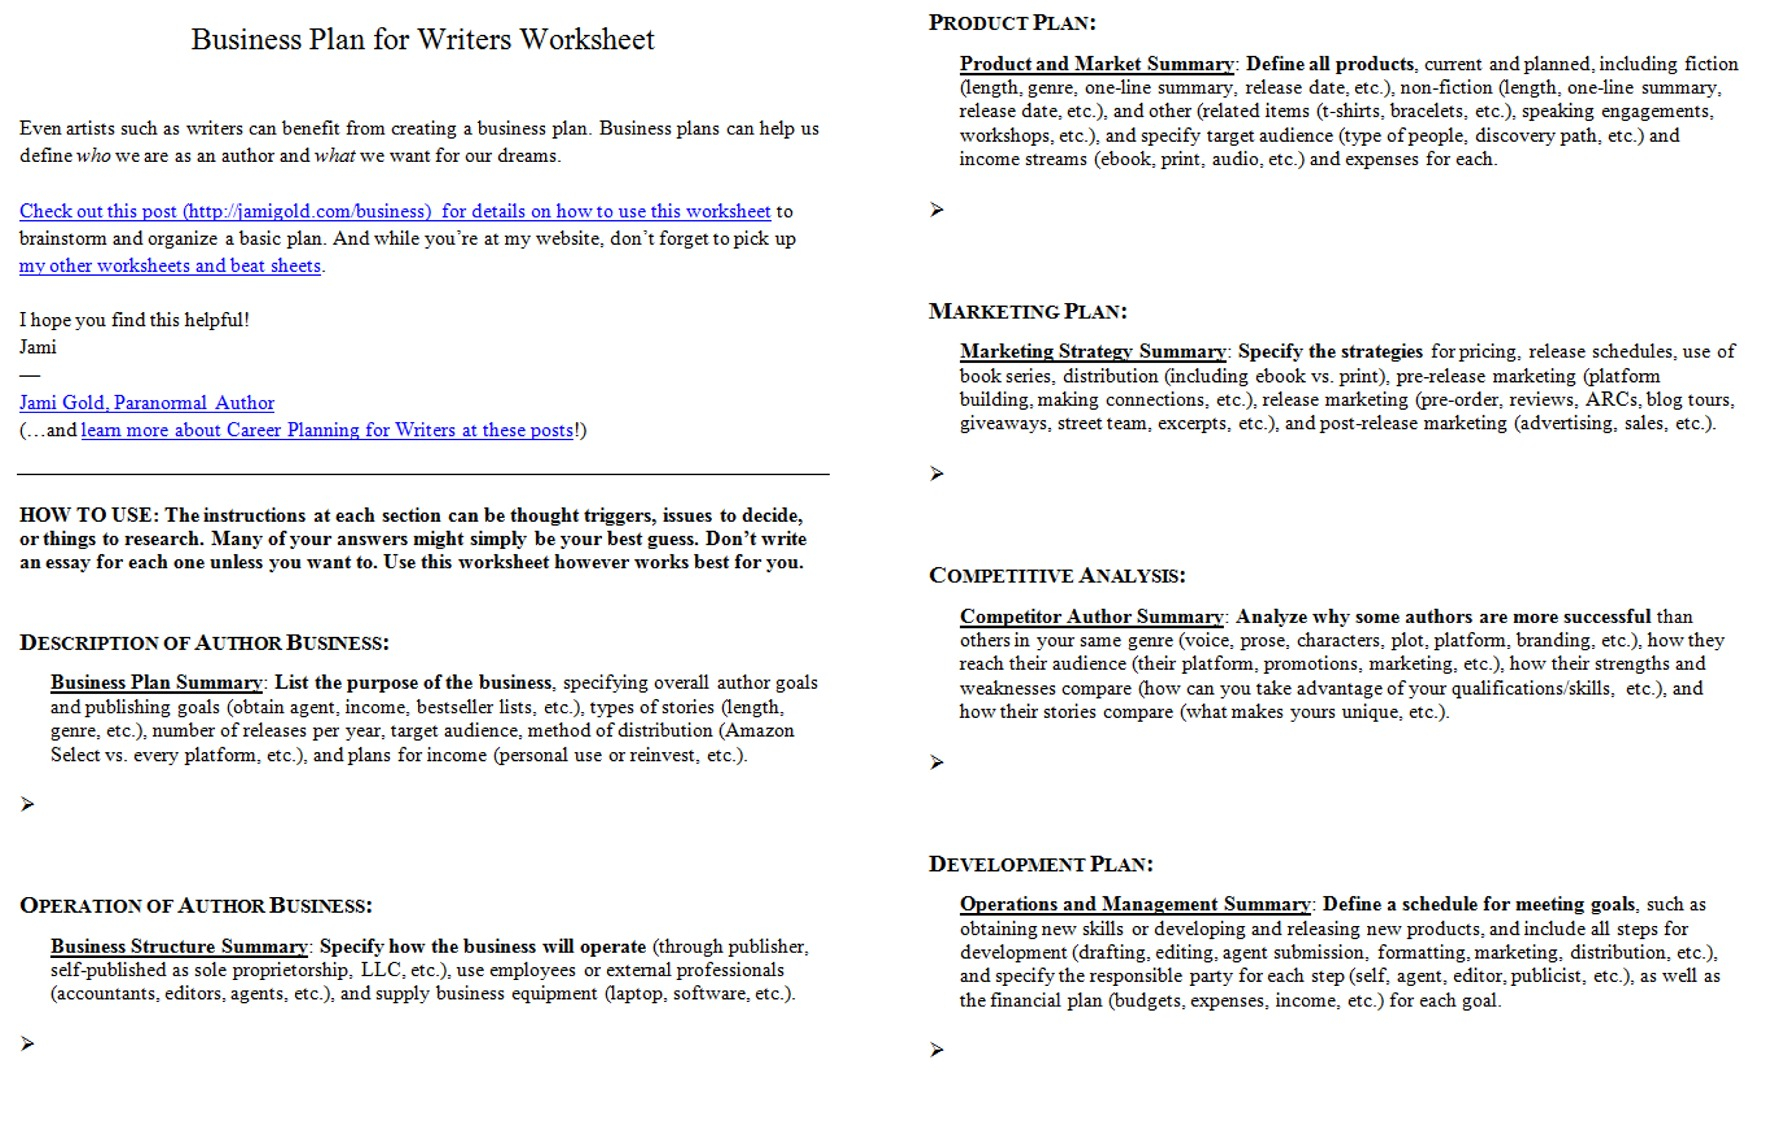 Aldiablosus  Personable Worksheets For Writers  Jami Gold Paranormal Author With Heavenly Screen Shot Of Both Pages Of The Business Plan For Writers Worksheet With Endearing Easy Worksheet Also Mayflower Worksheets In Addition Accounting Worksheet Excel And World War Ii Worksheet As Well As Transition Word Worksheets Additionally Geometry Circle Worksheets From Jamigoldcom With Aldiablosus  Heavenly Worksheets For Writers  Jami Gold Paranormal Author With Endearing Screen Shot Of Both Pages Of The Business Plan For Writers Worksheet And Personable Easy Worksheet Also Mayflower Worksheets In Addition Accounting Worksheet Excel From Jamigoldcom